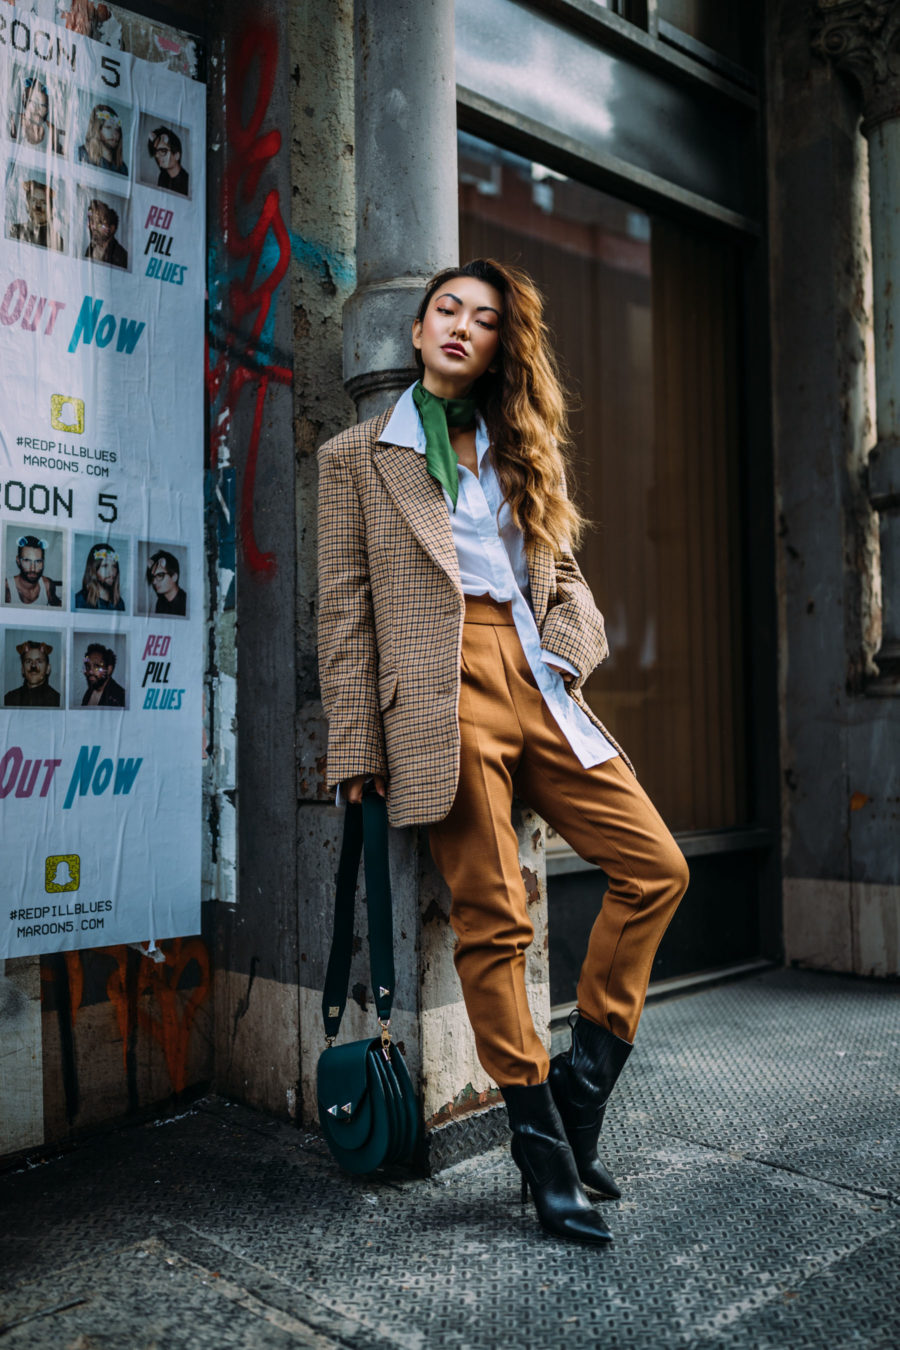 cozy meets chic - the most comfortable on-trend fall outfits, cozy chic outfits - oversized blazer, plaid blazer, menswear inspired fashion, green accessories, oversized tailoring, oversized button up// Jessica Wang - Notjessfashion.com